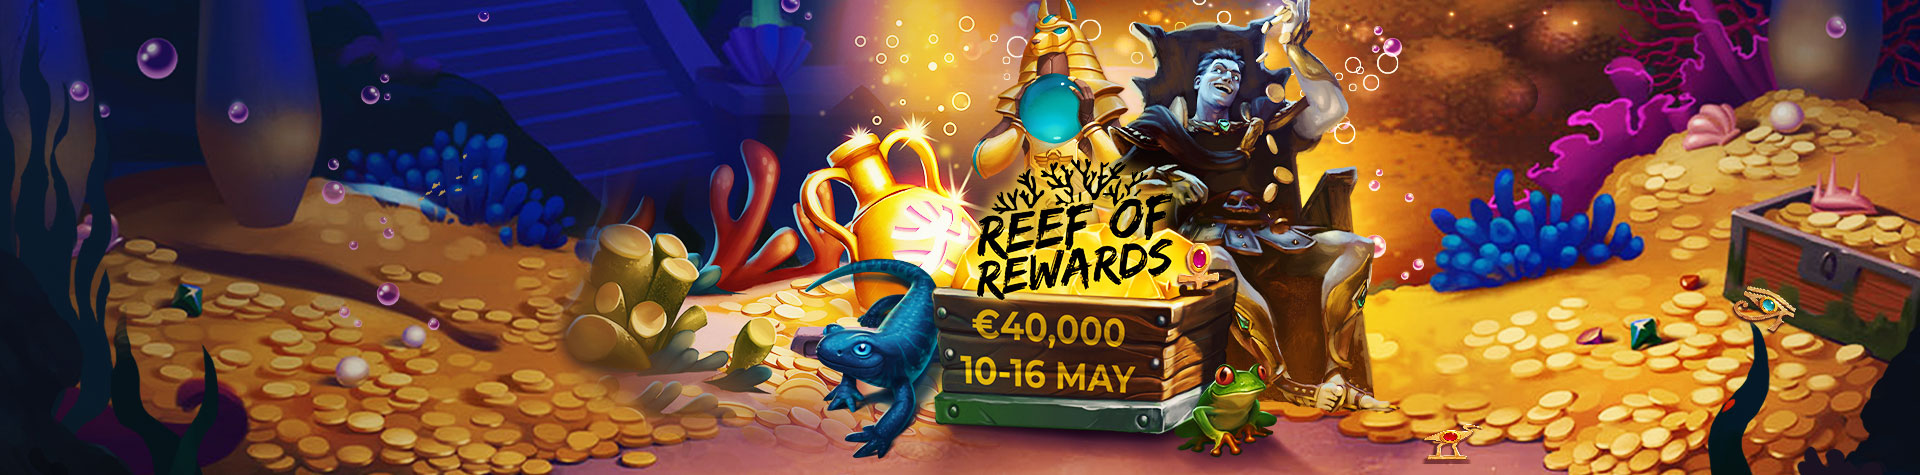 DFD ReefOfRewards BG 1920x475